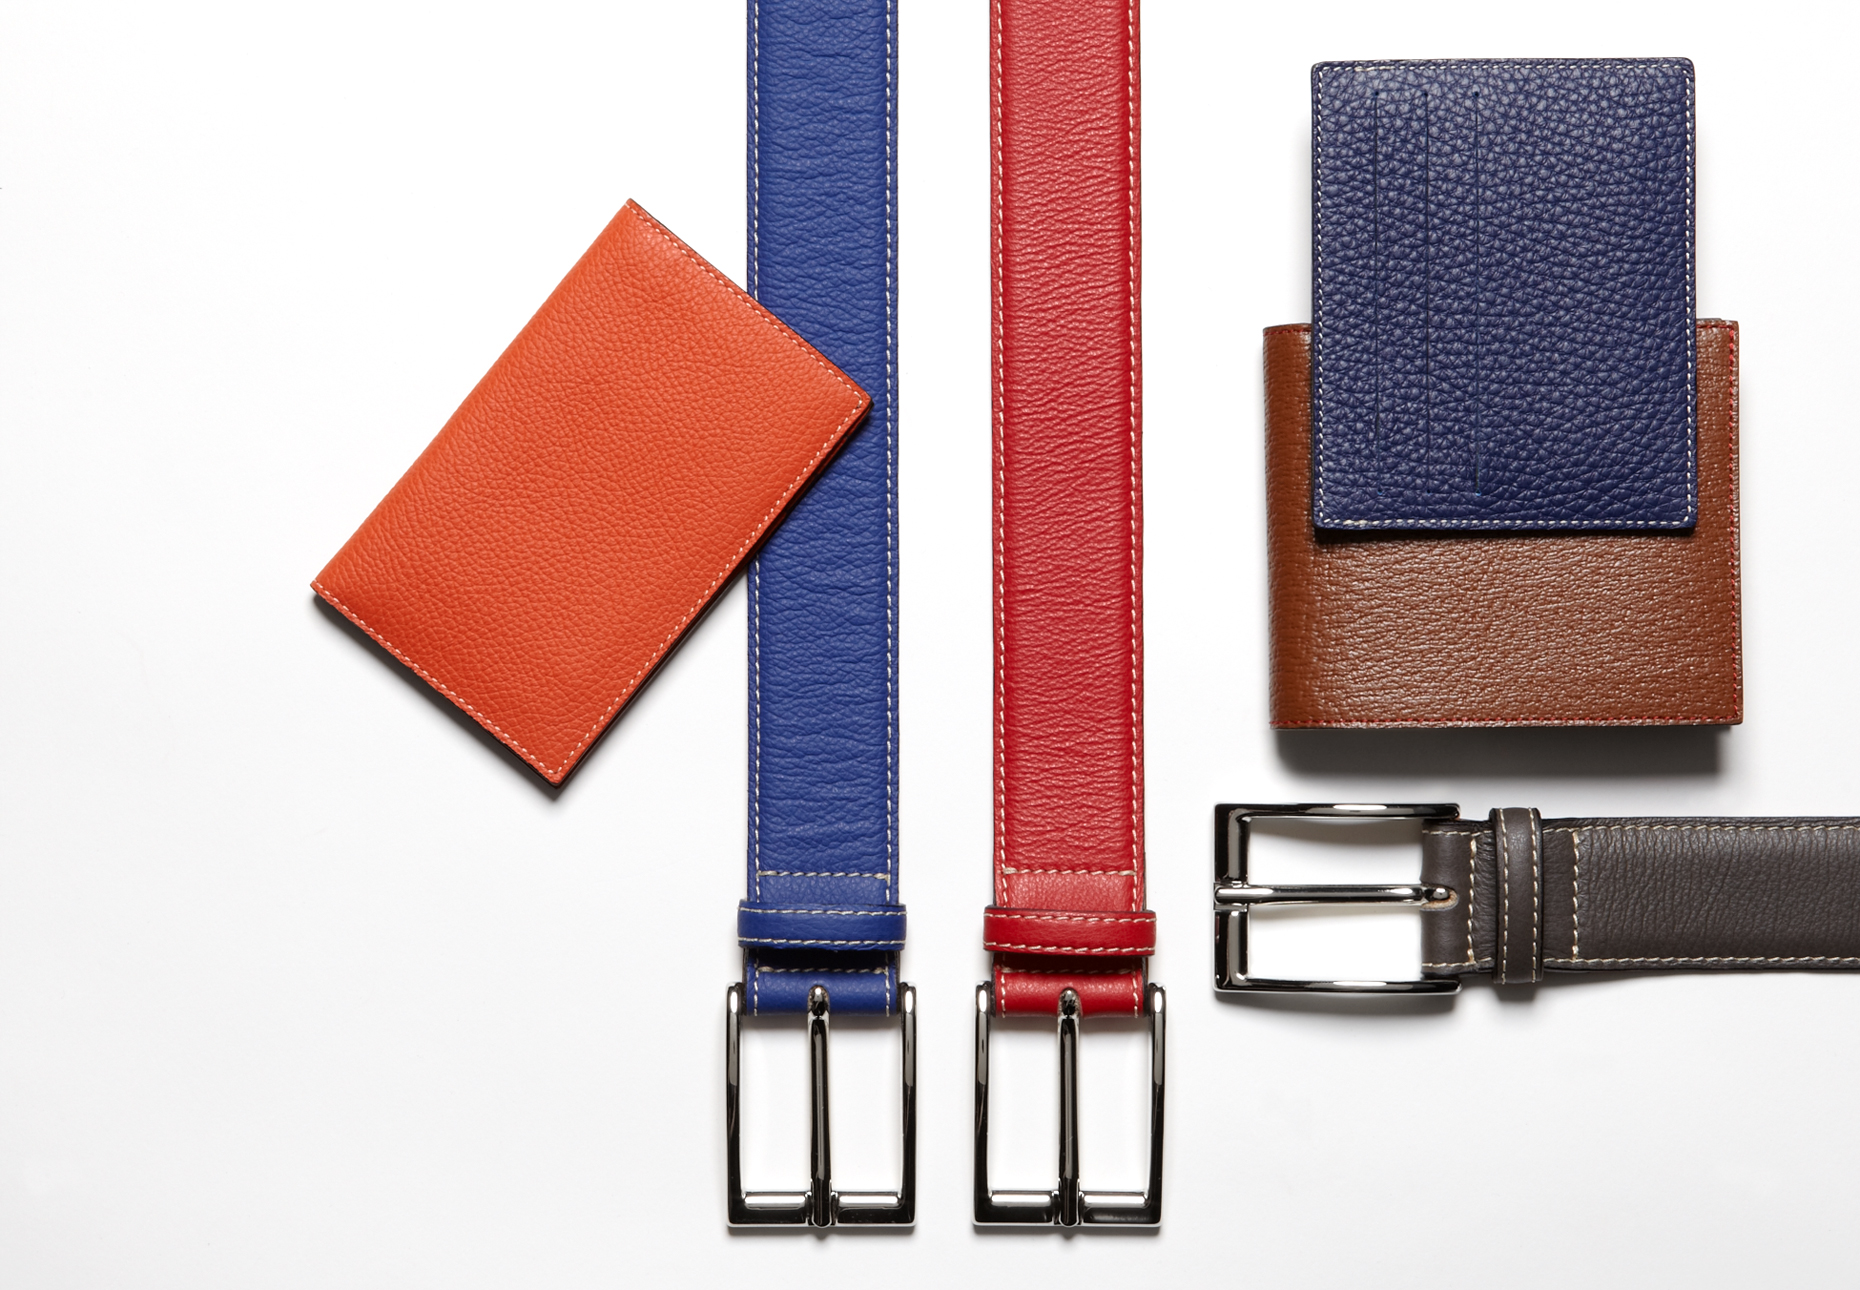 130708_Leone-Braconi-(mens-belts-and-wallets)10132373_0715_A1